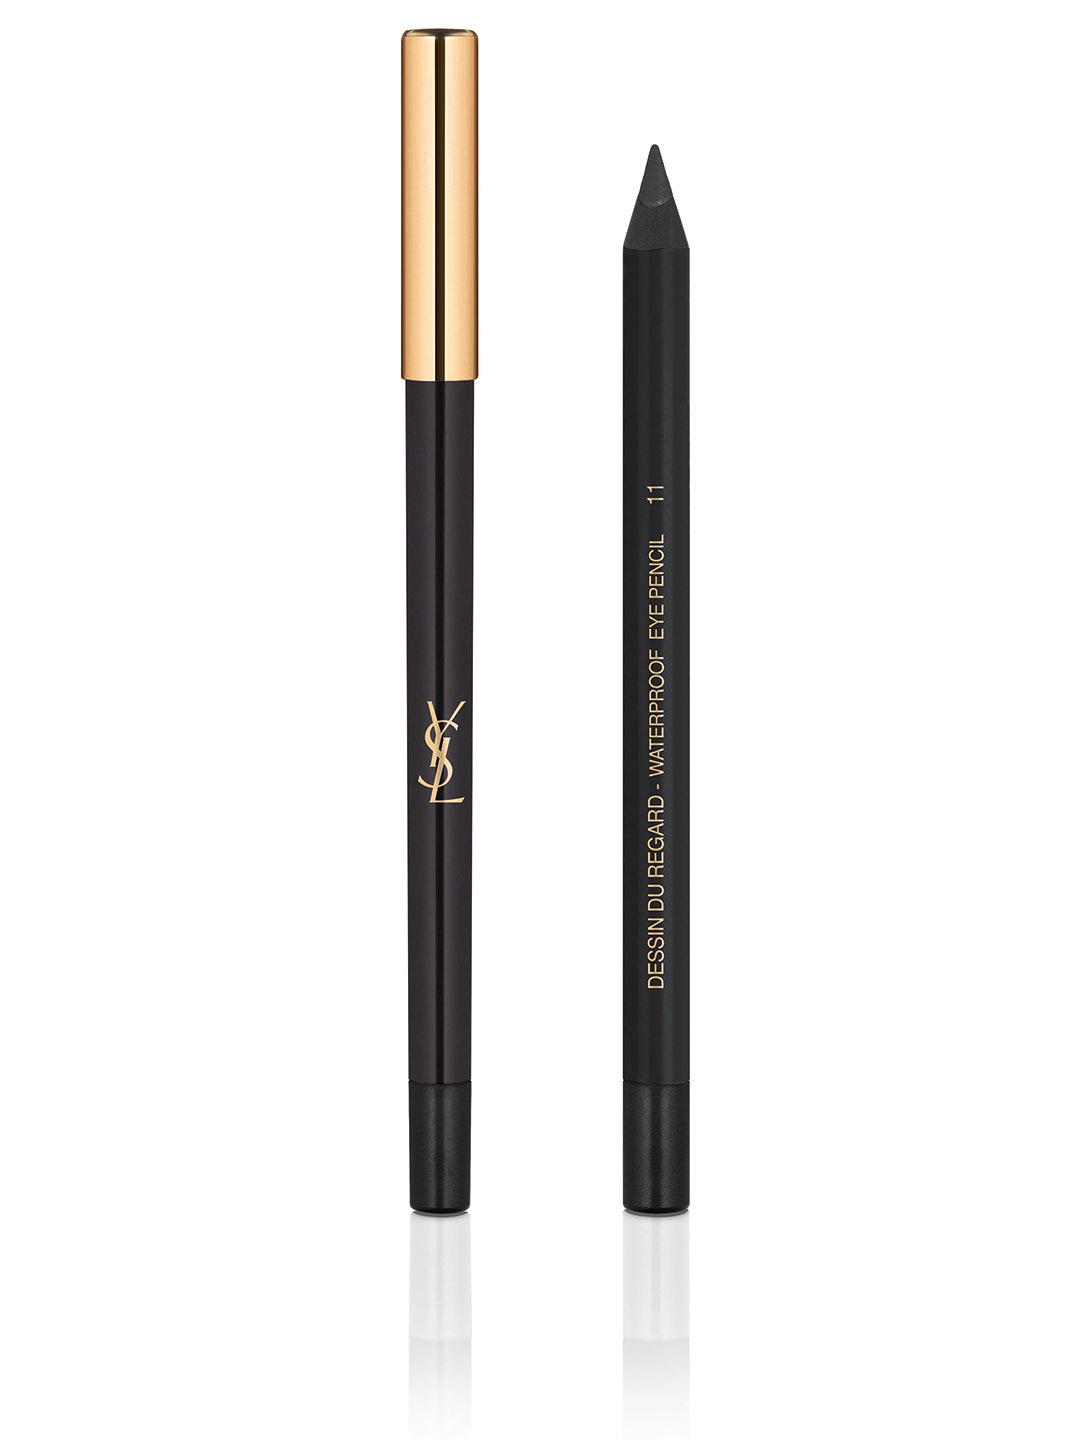 YVES SAINT LAURENT Crayon Dessin du Regard Waterproof Beauté Noir